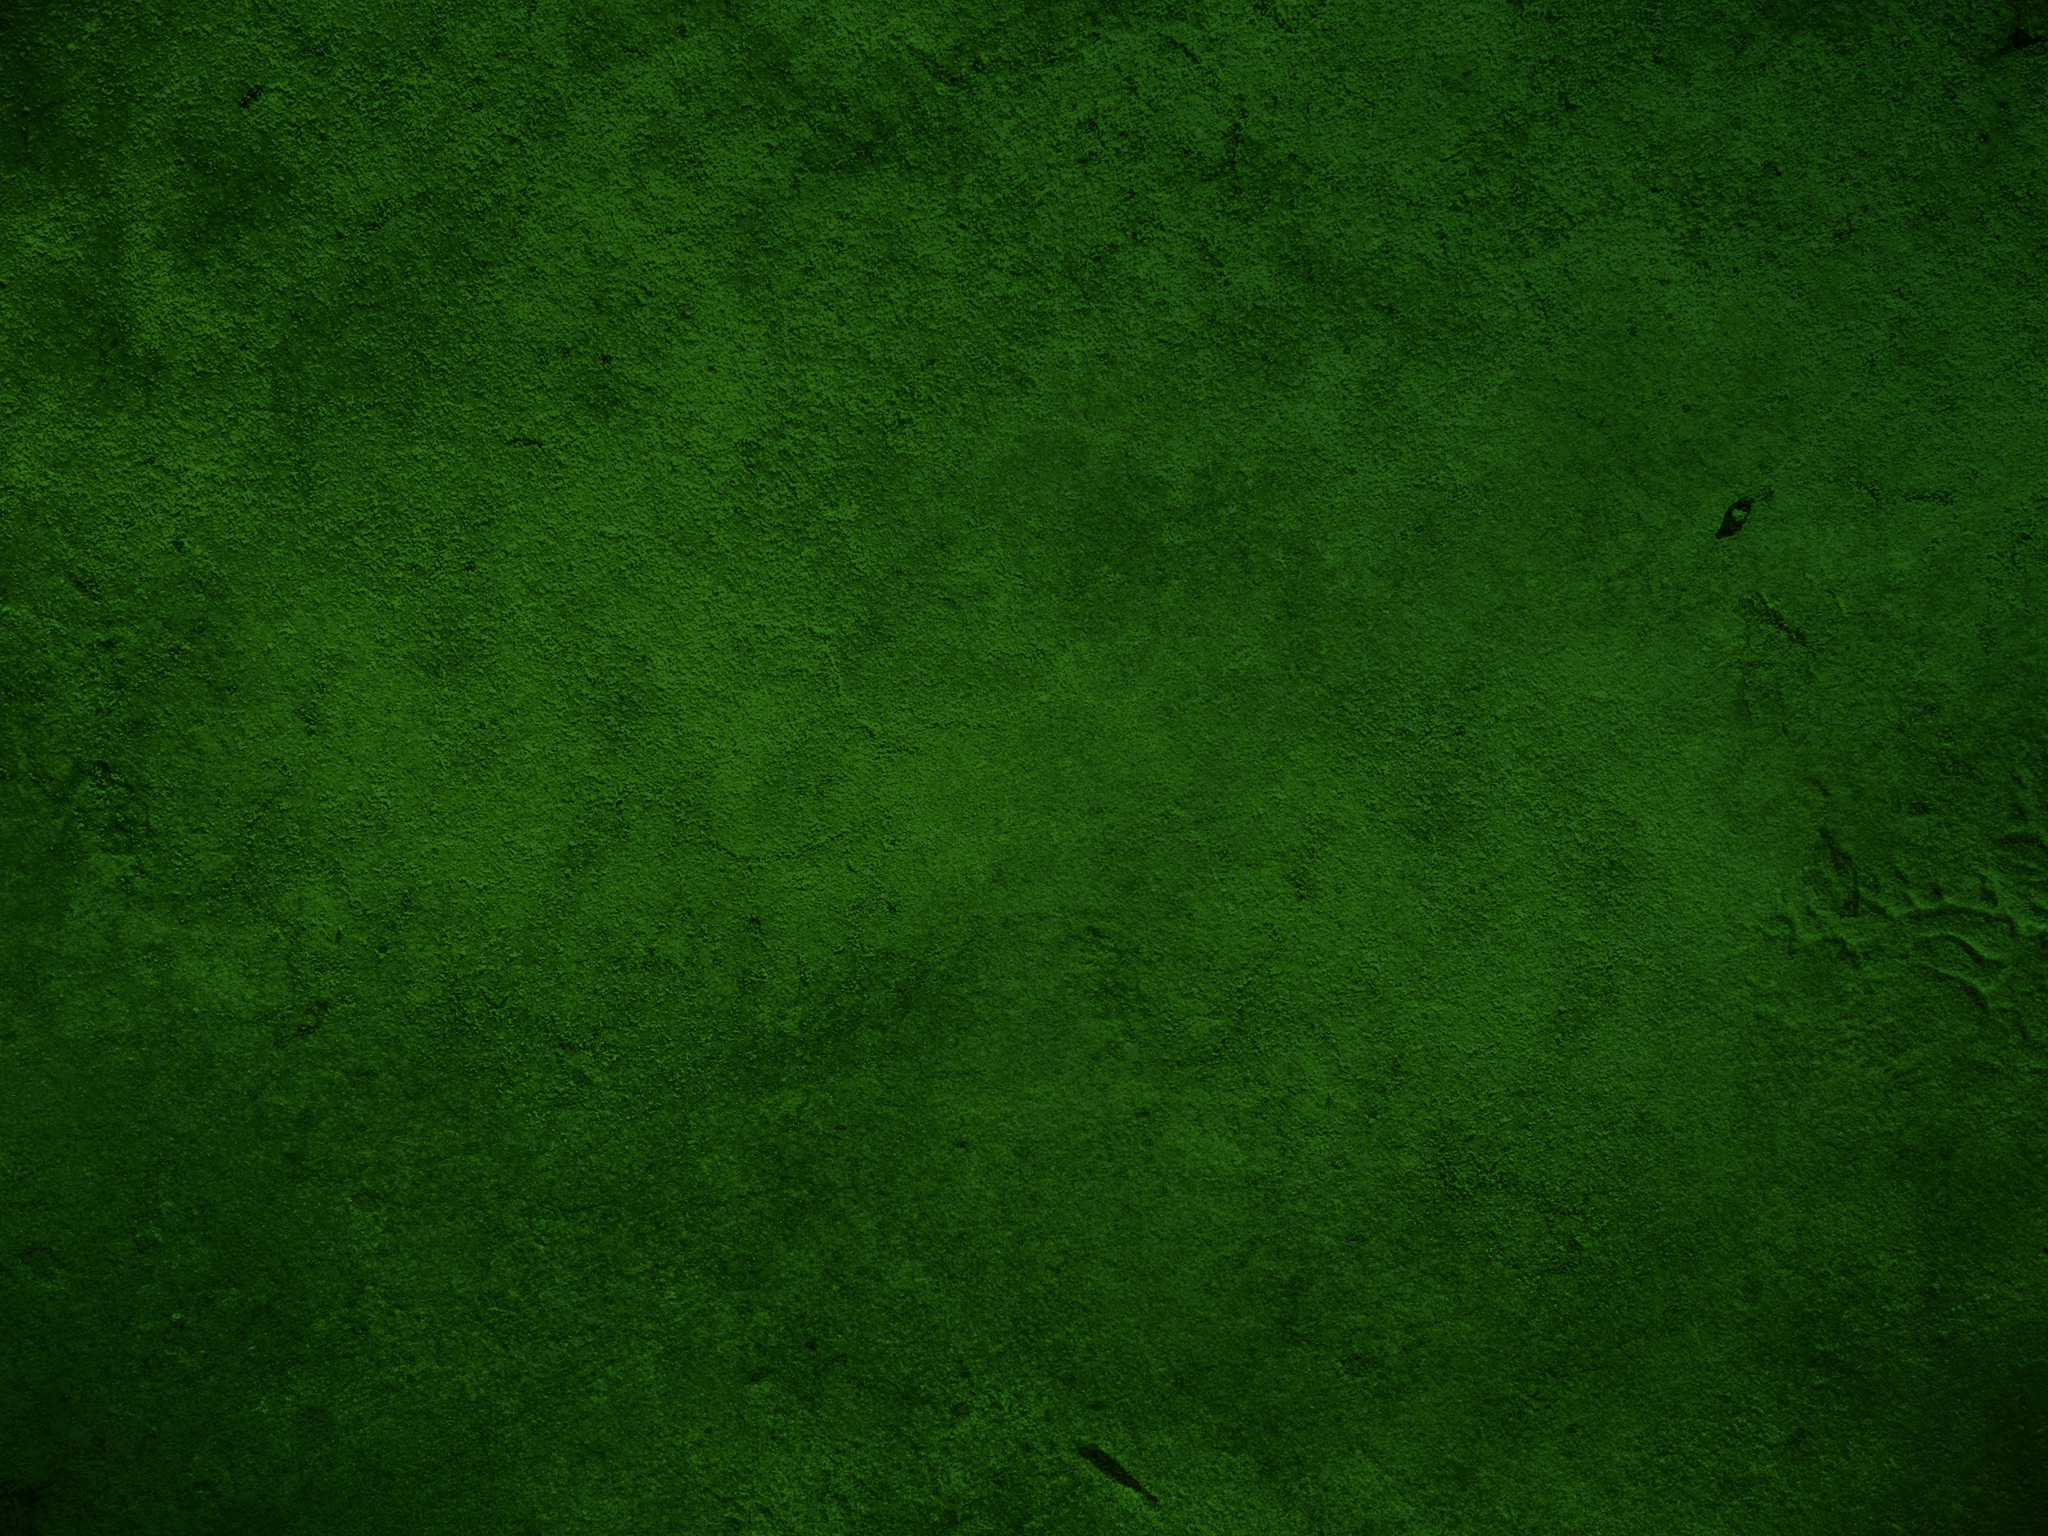 green texture wallpaper from - photo #10